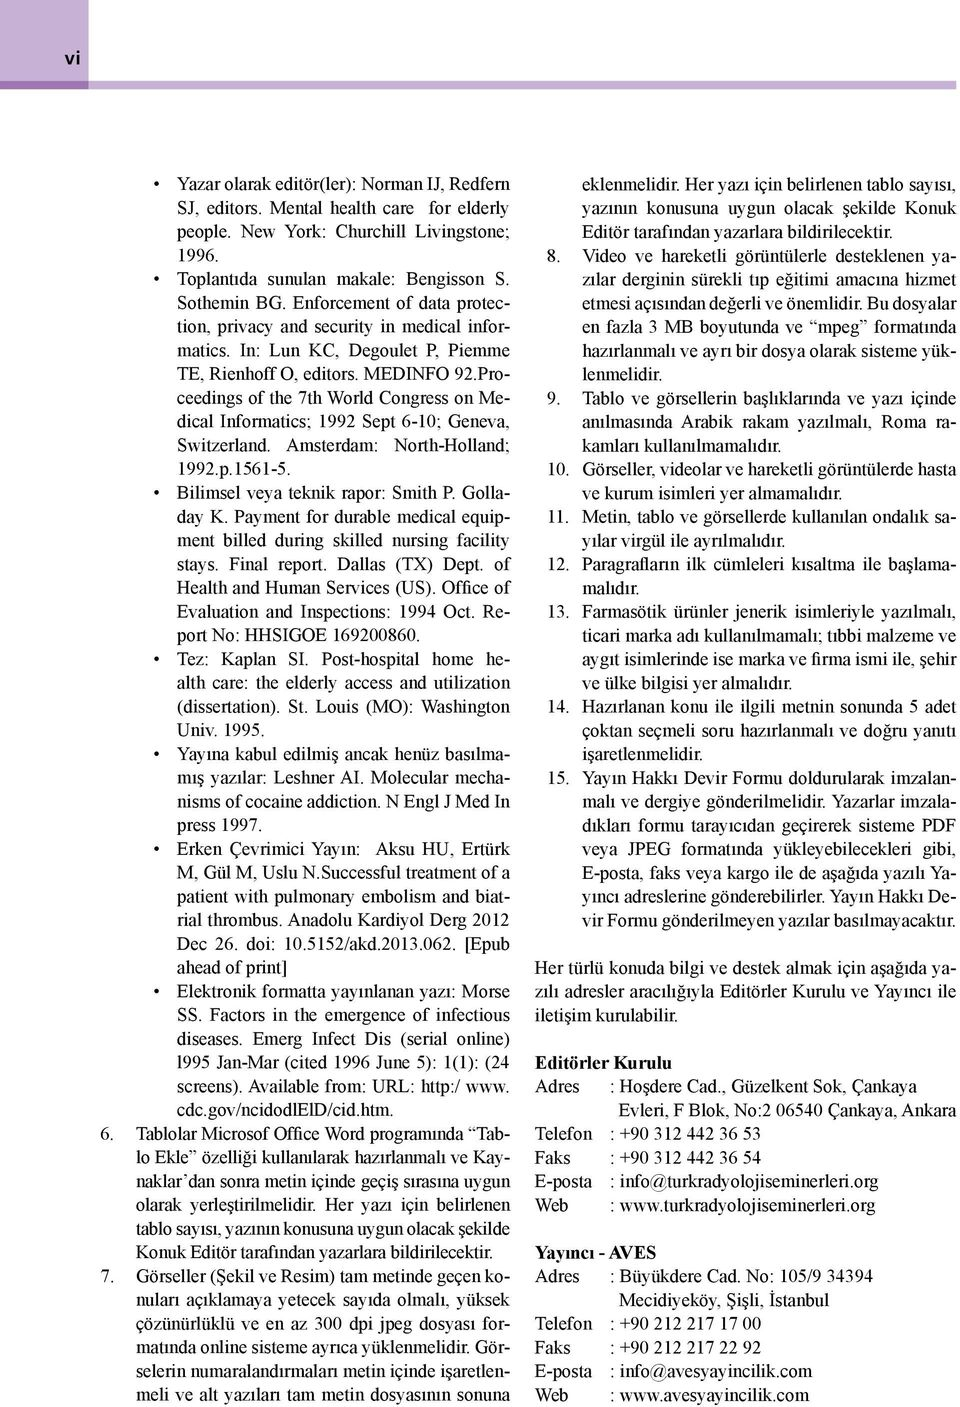 Proceedings of the 7th World Congress on Medical Informatics; 1992 Sept 6-10; Geneva, Switzerland. Amsterdam: North-Holland; 1992.p.1561-5. Bilimsel veya teknik rapor: Smith P. Golladay K.